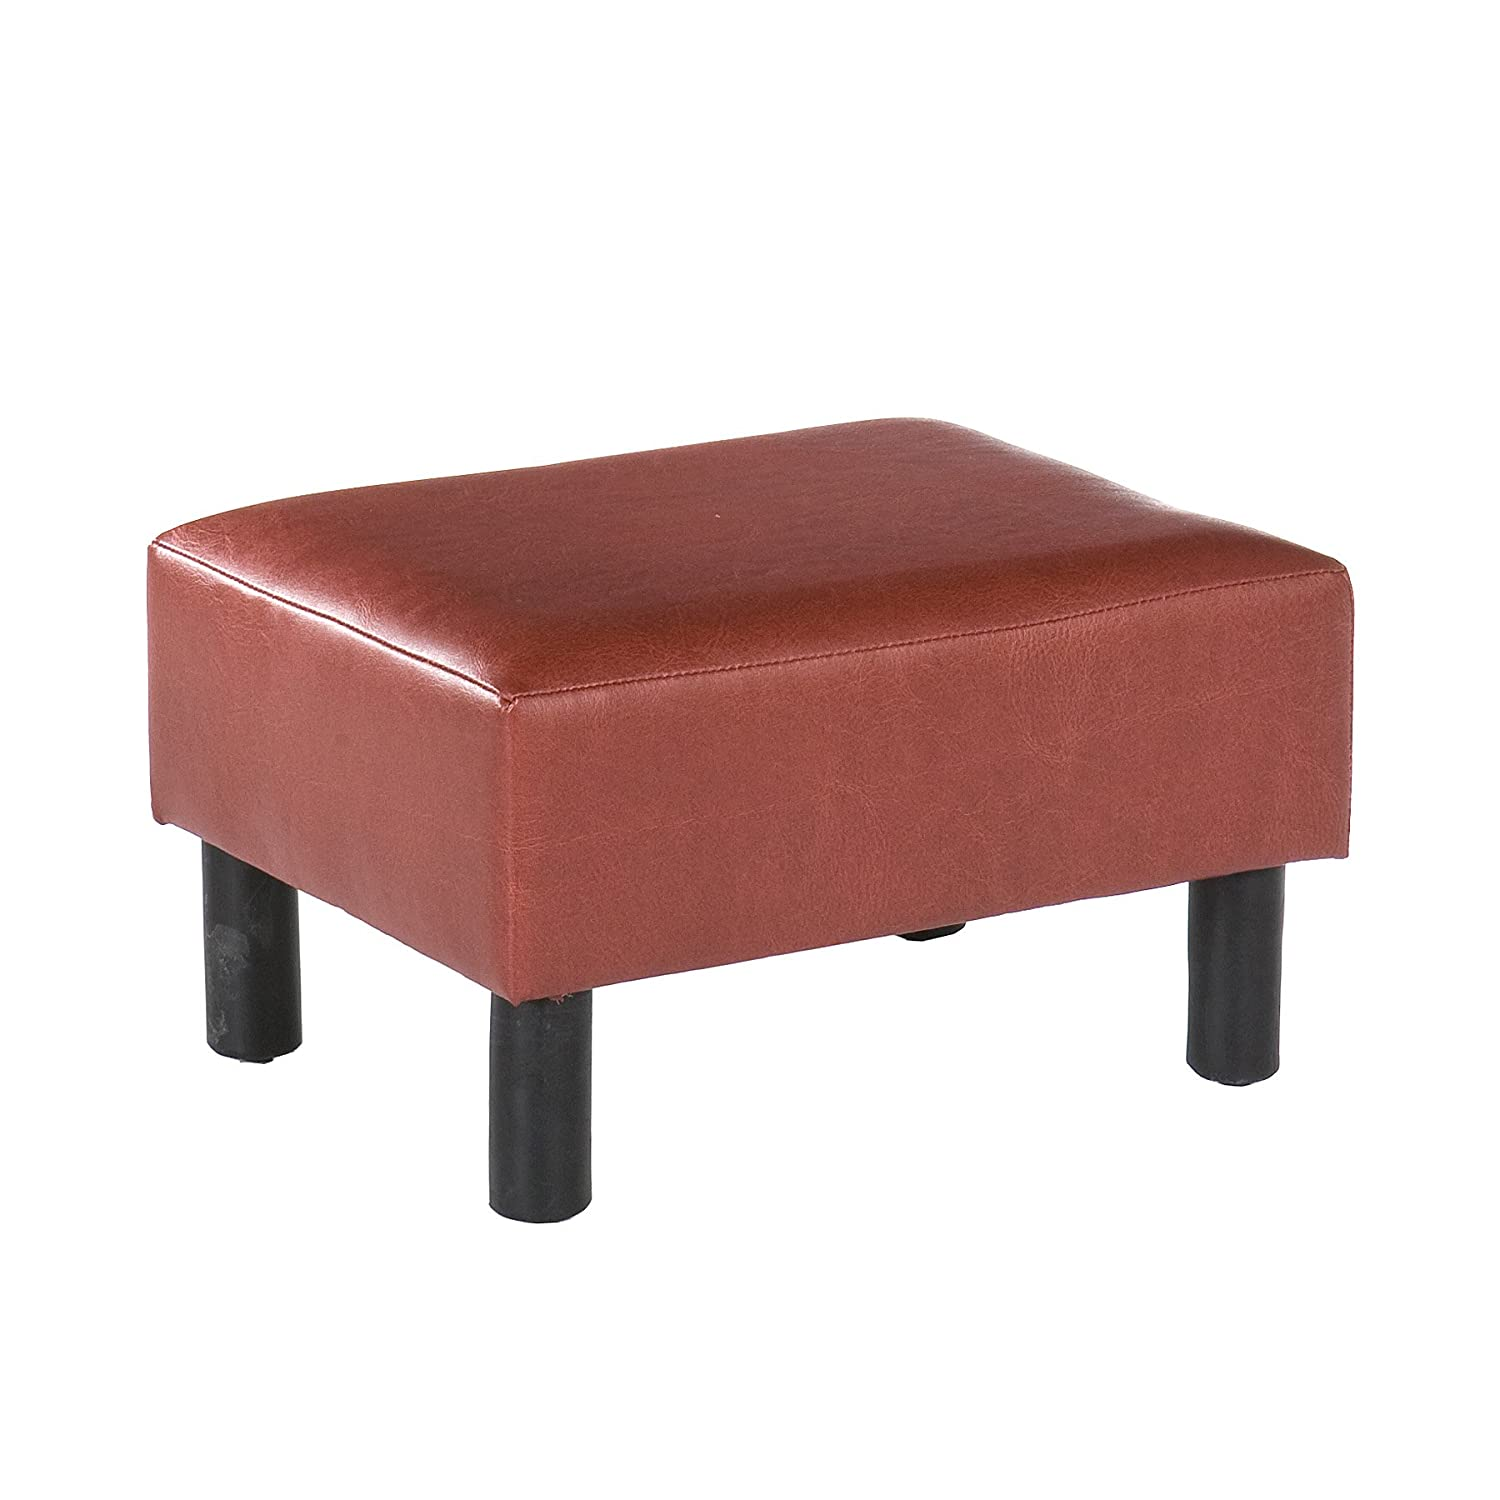 Southern Enterprises, Inc Red Leather Foot Stool